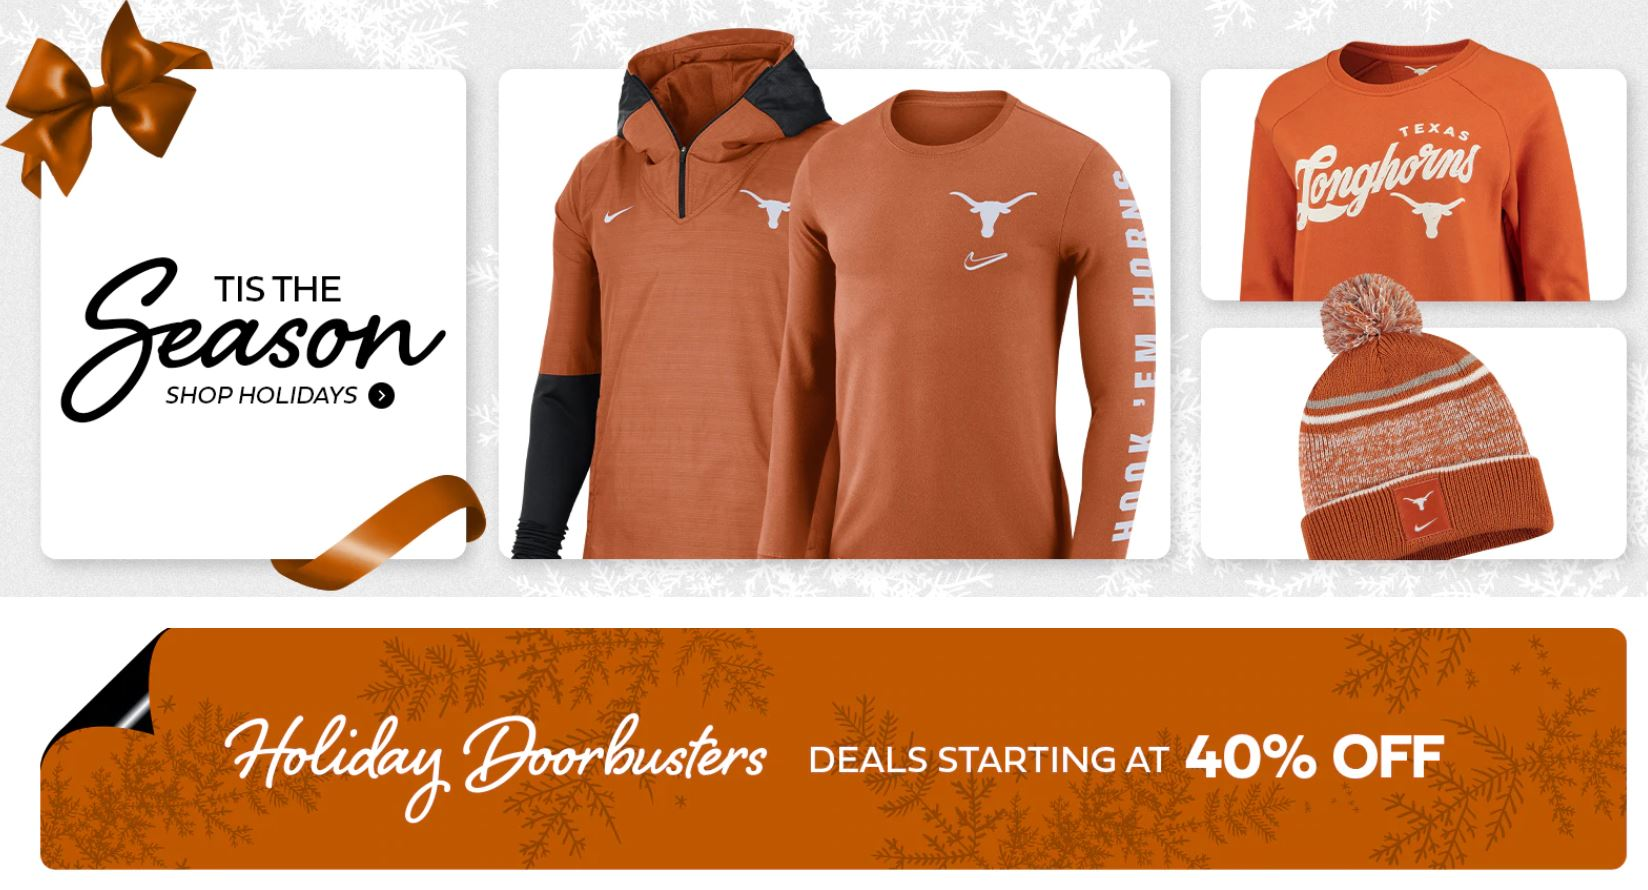 Texas Longhorns Official Shop Holiday